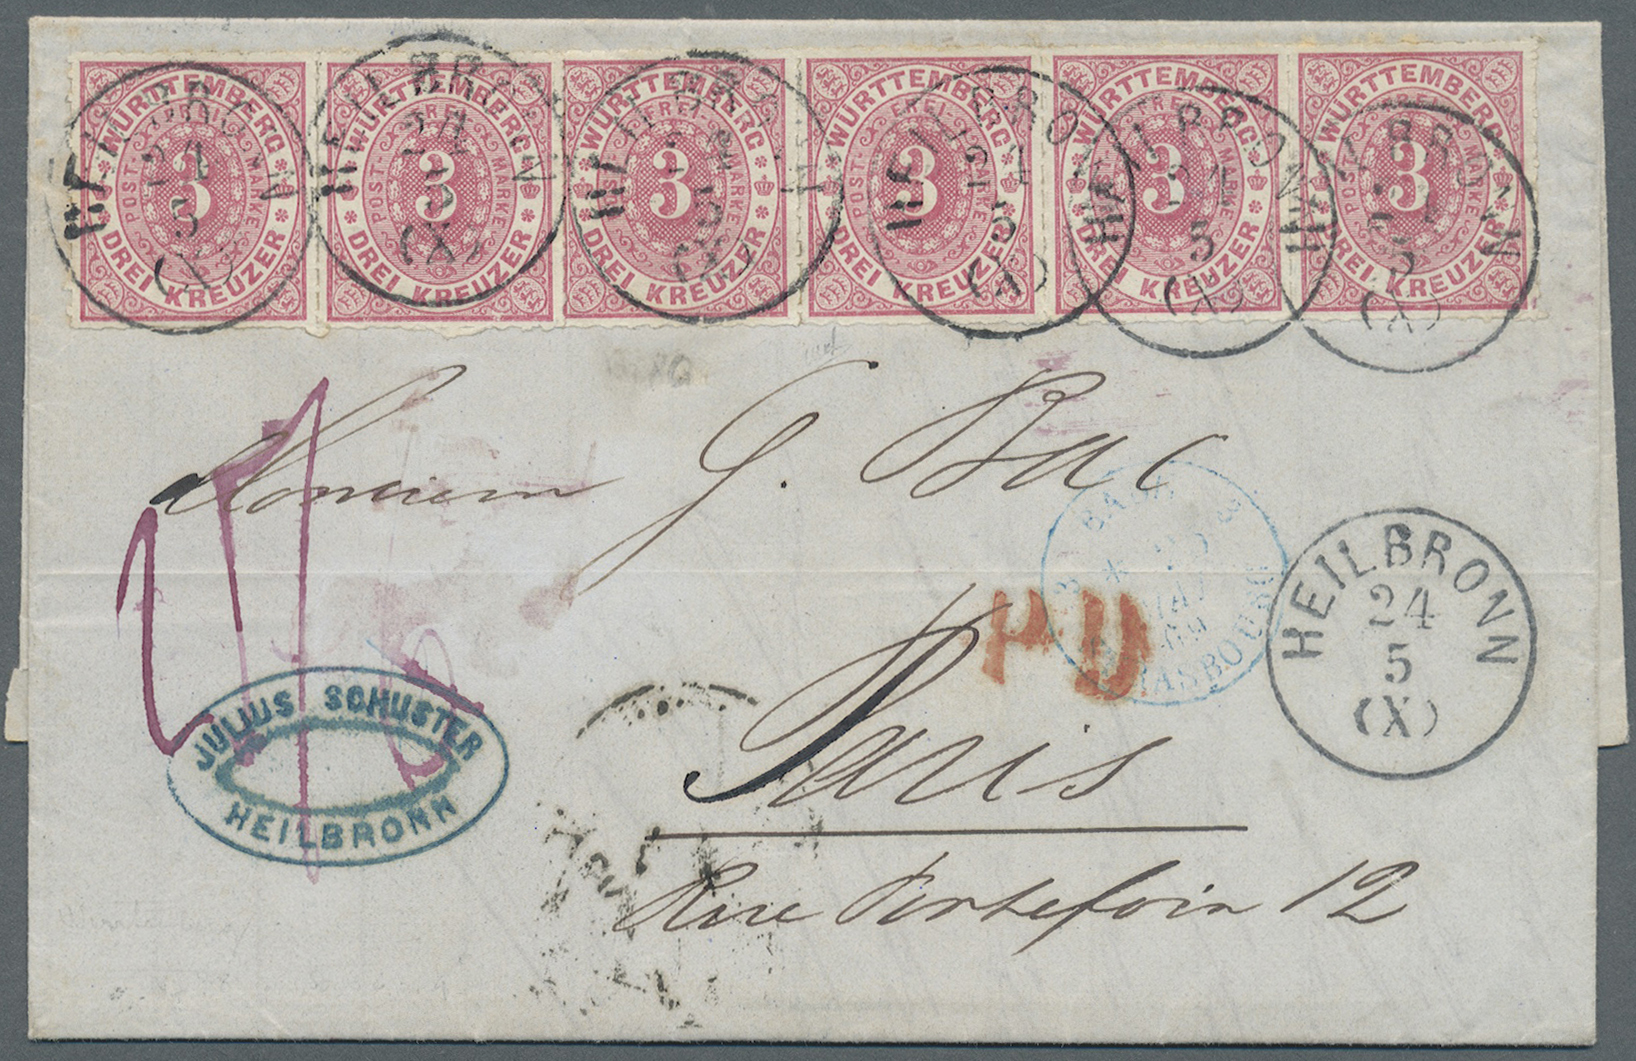 Lot 00141 - Württemberg - Marken und Briefe  -  Auktionshaus Christoph Gärtner GmbH & Co. KG Intenational Rarities and contains lots from the collection of Peter Zgonc